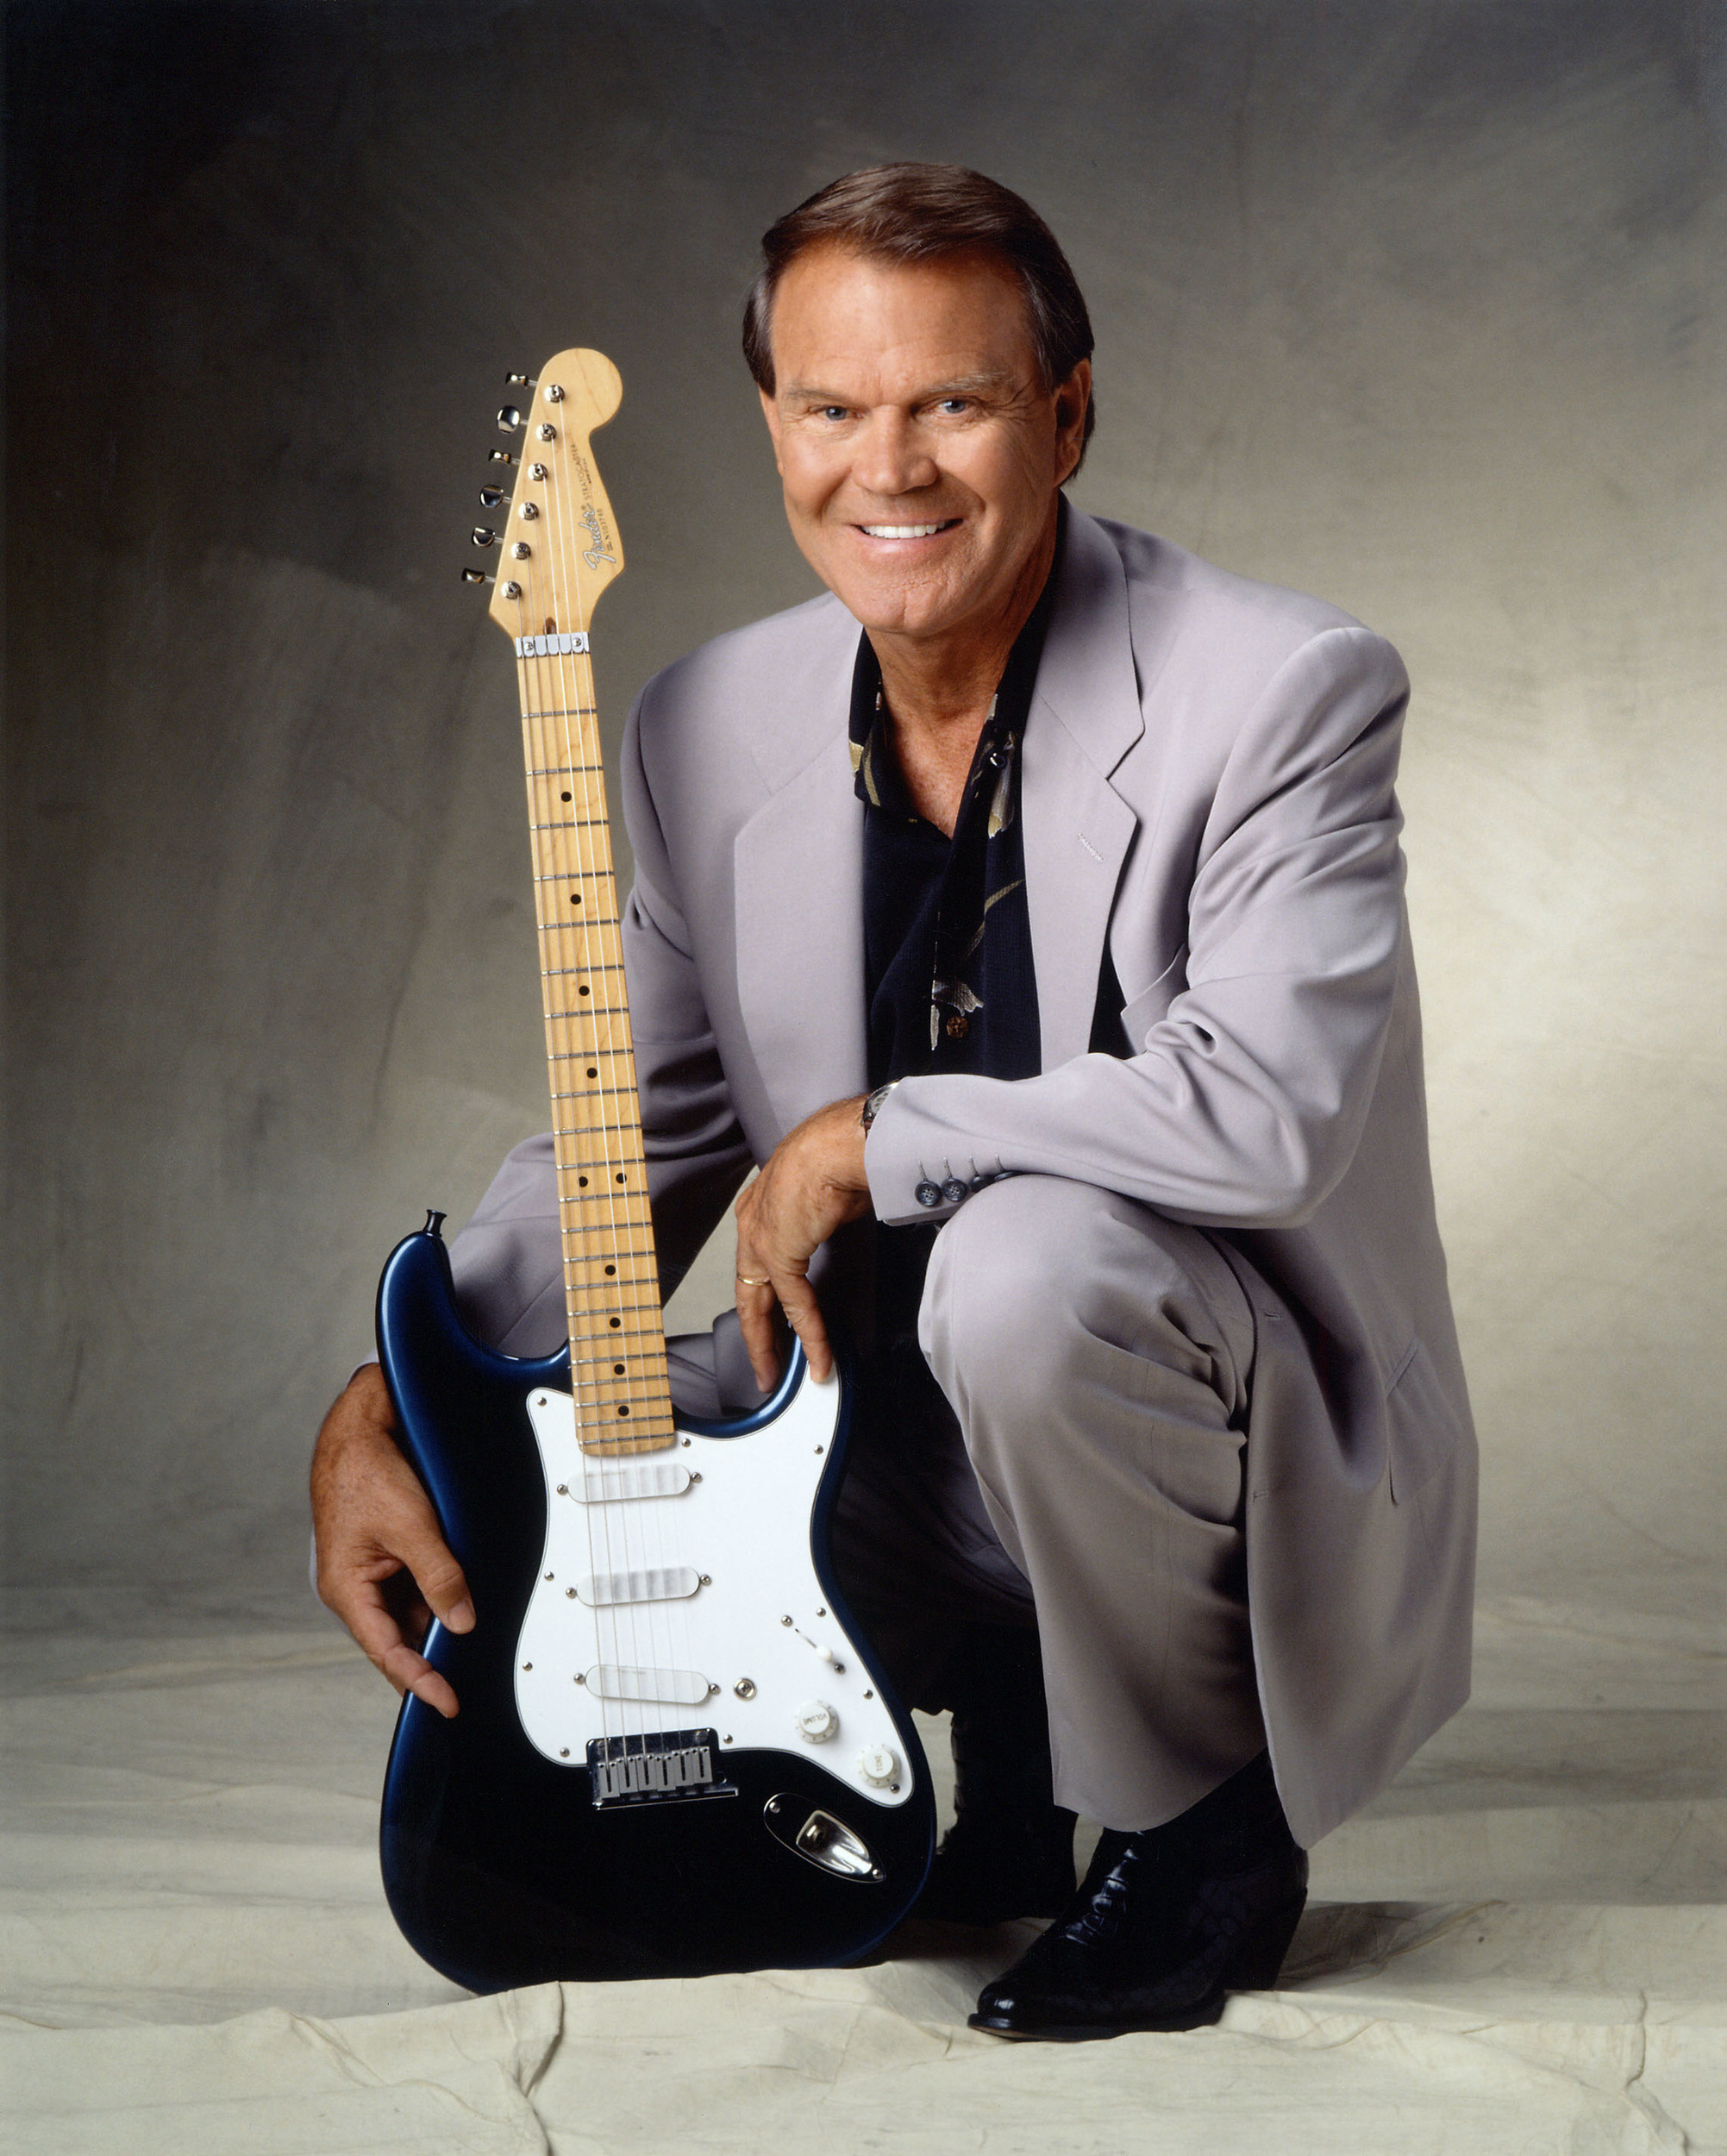 Glen Campbell in later years with his Fender Stratocaster guitar.